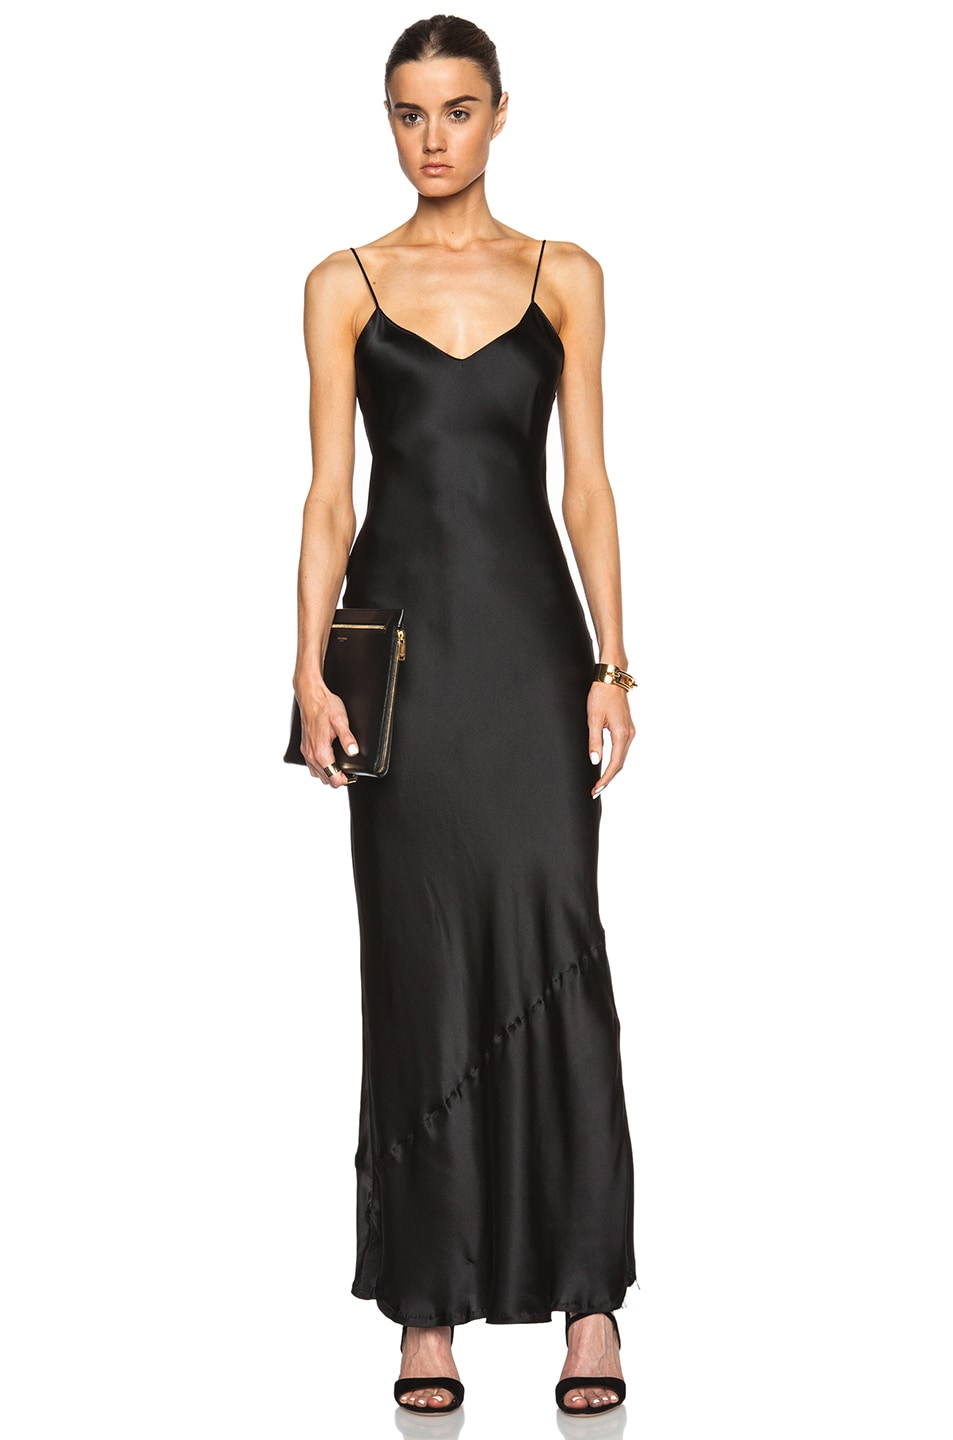 Core Silk Charmeuse Slip Gown - Black Size Xs in Blue